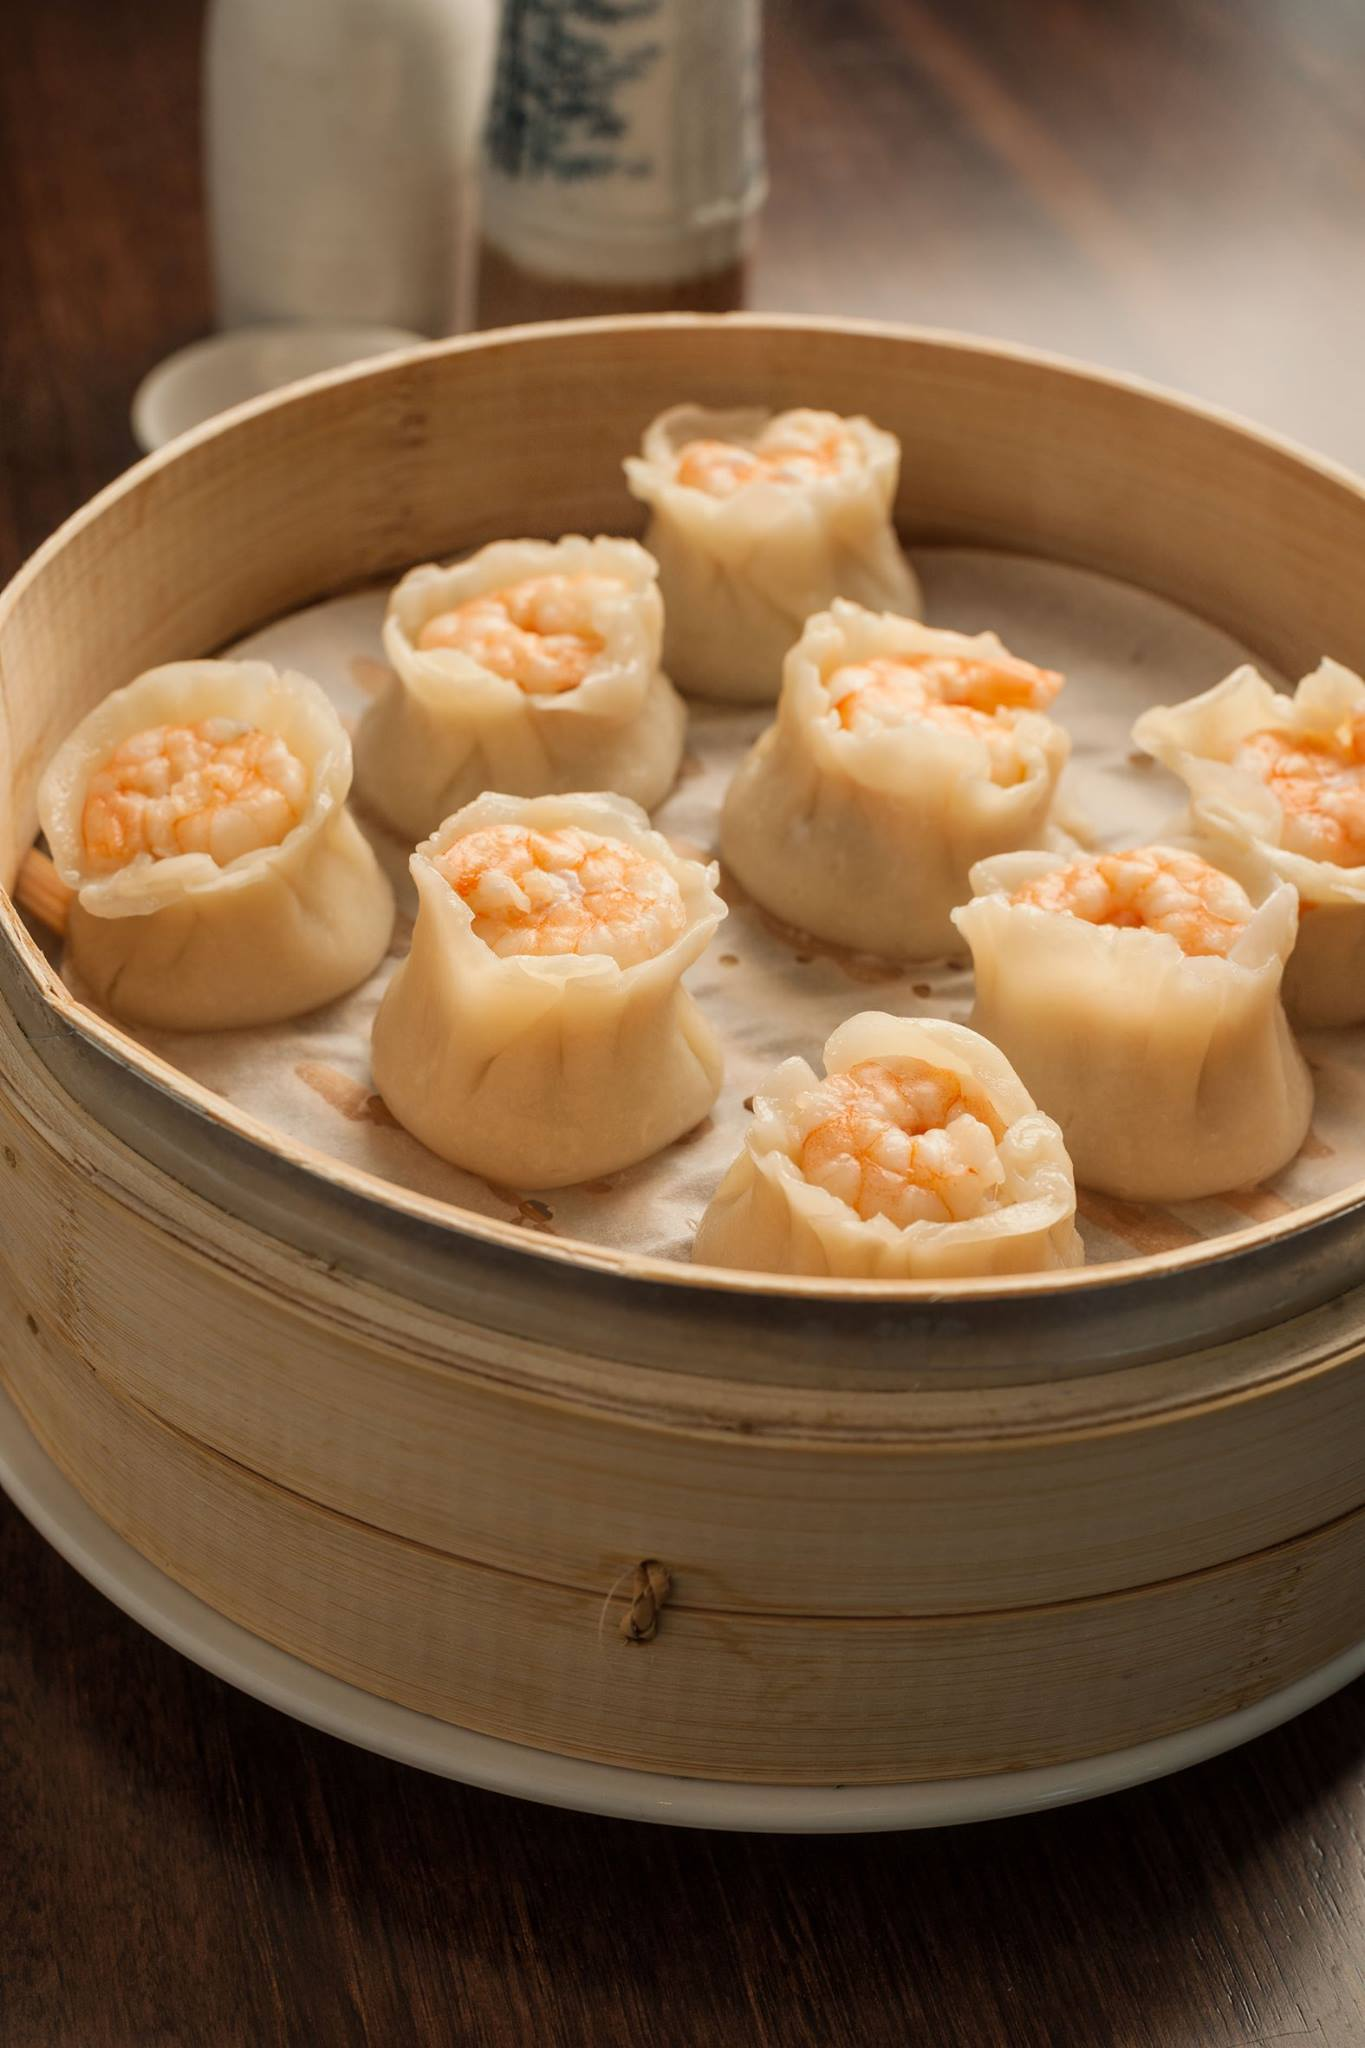 Steamed dumplings - and the famous handmade xiao long bao are the signature piece.